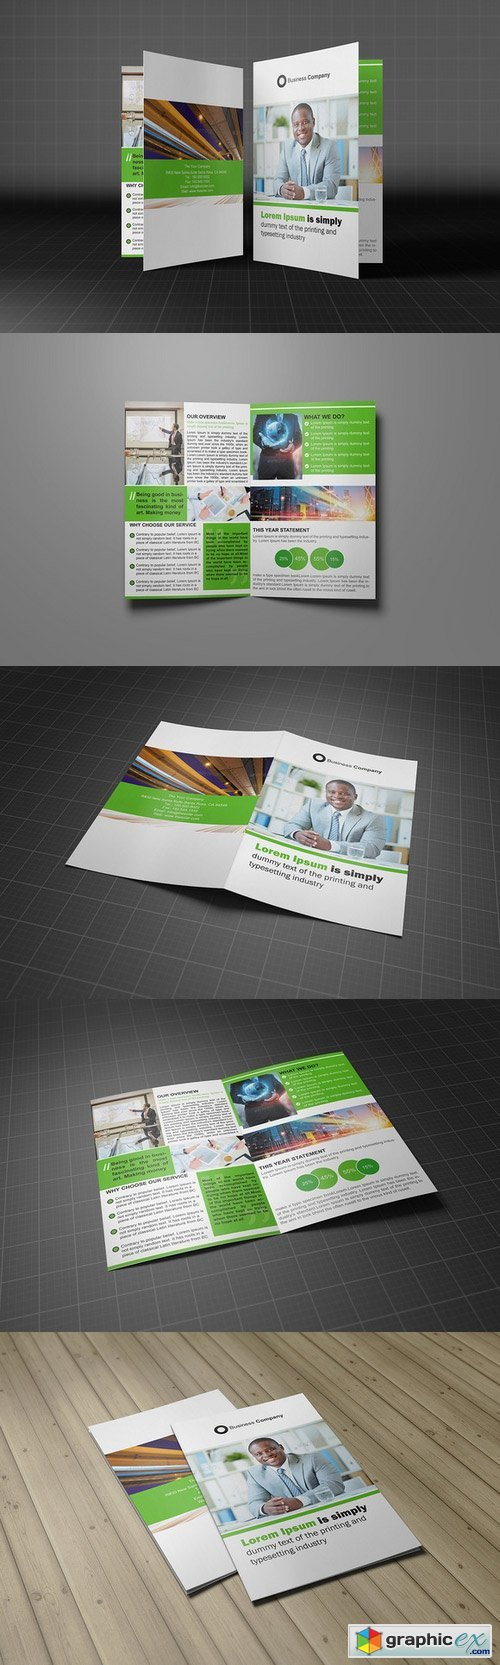 Bifold Brochure Template Vol 03 285119